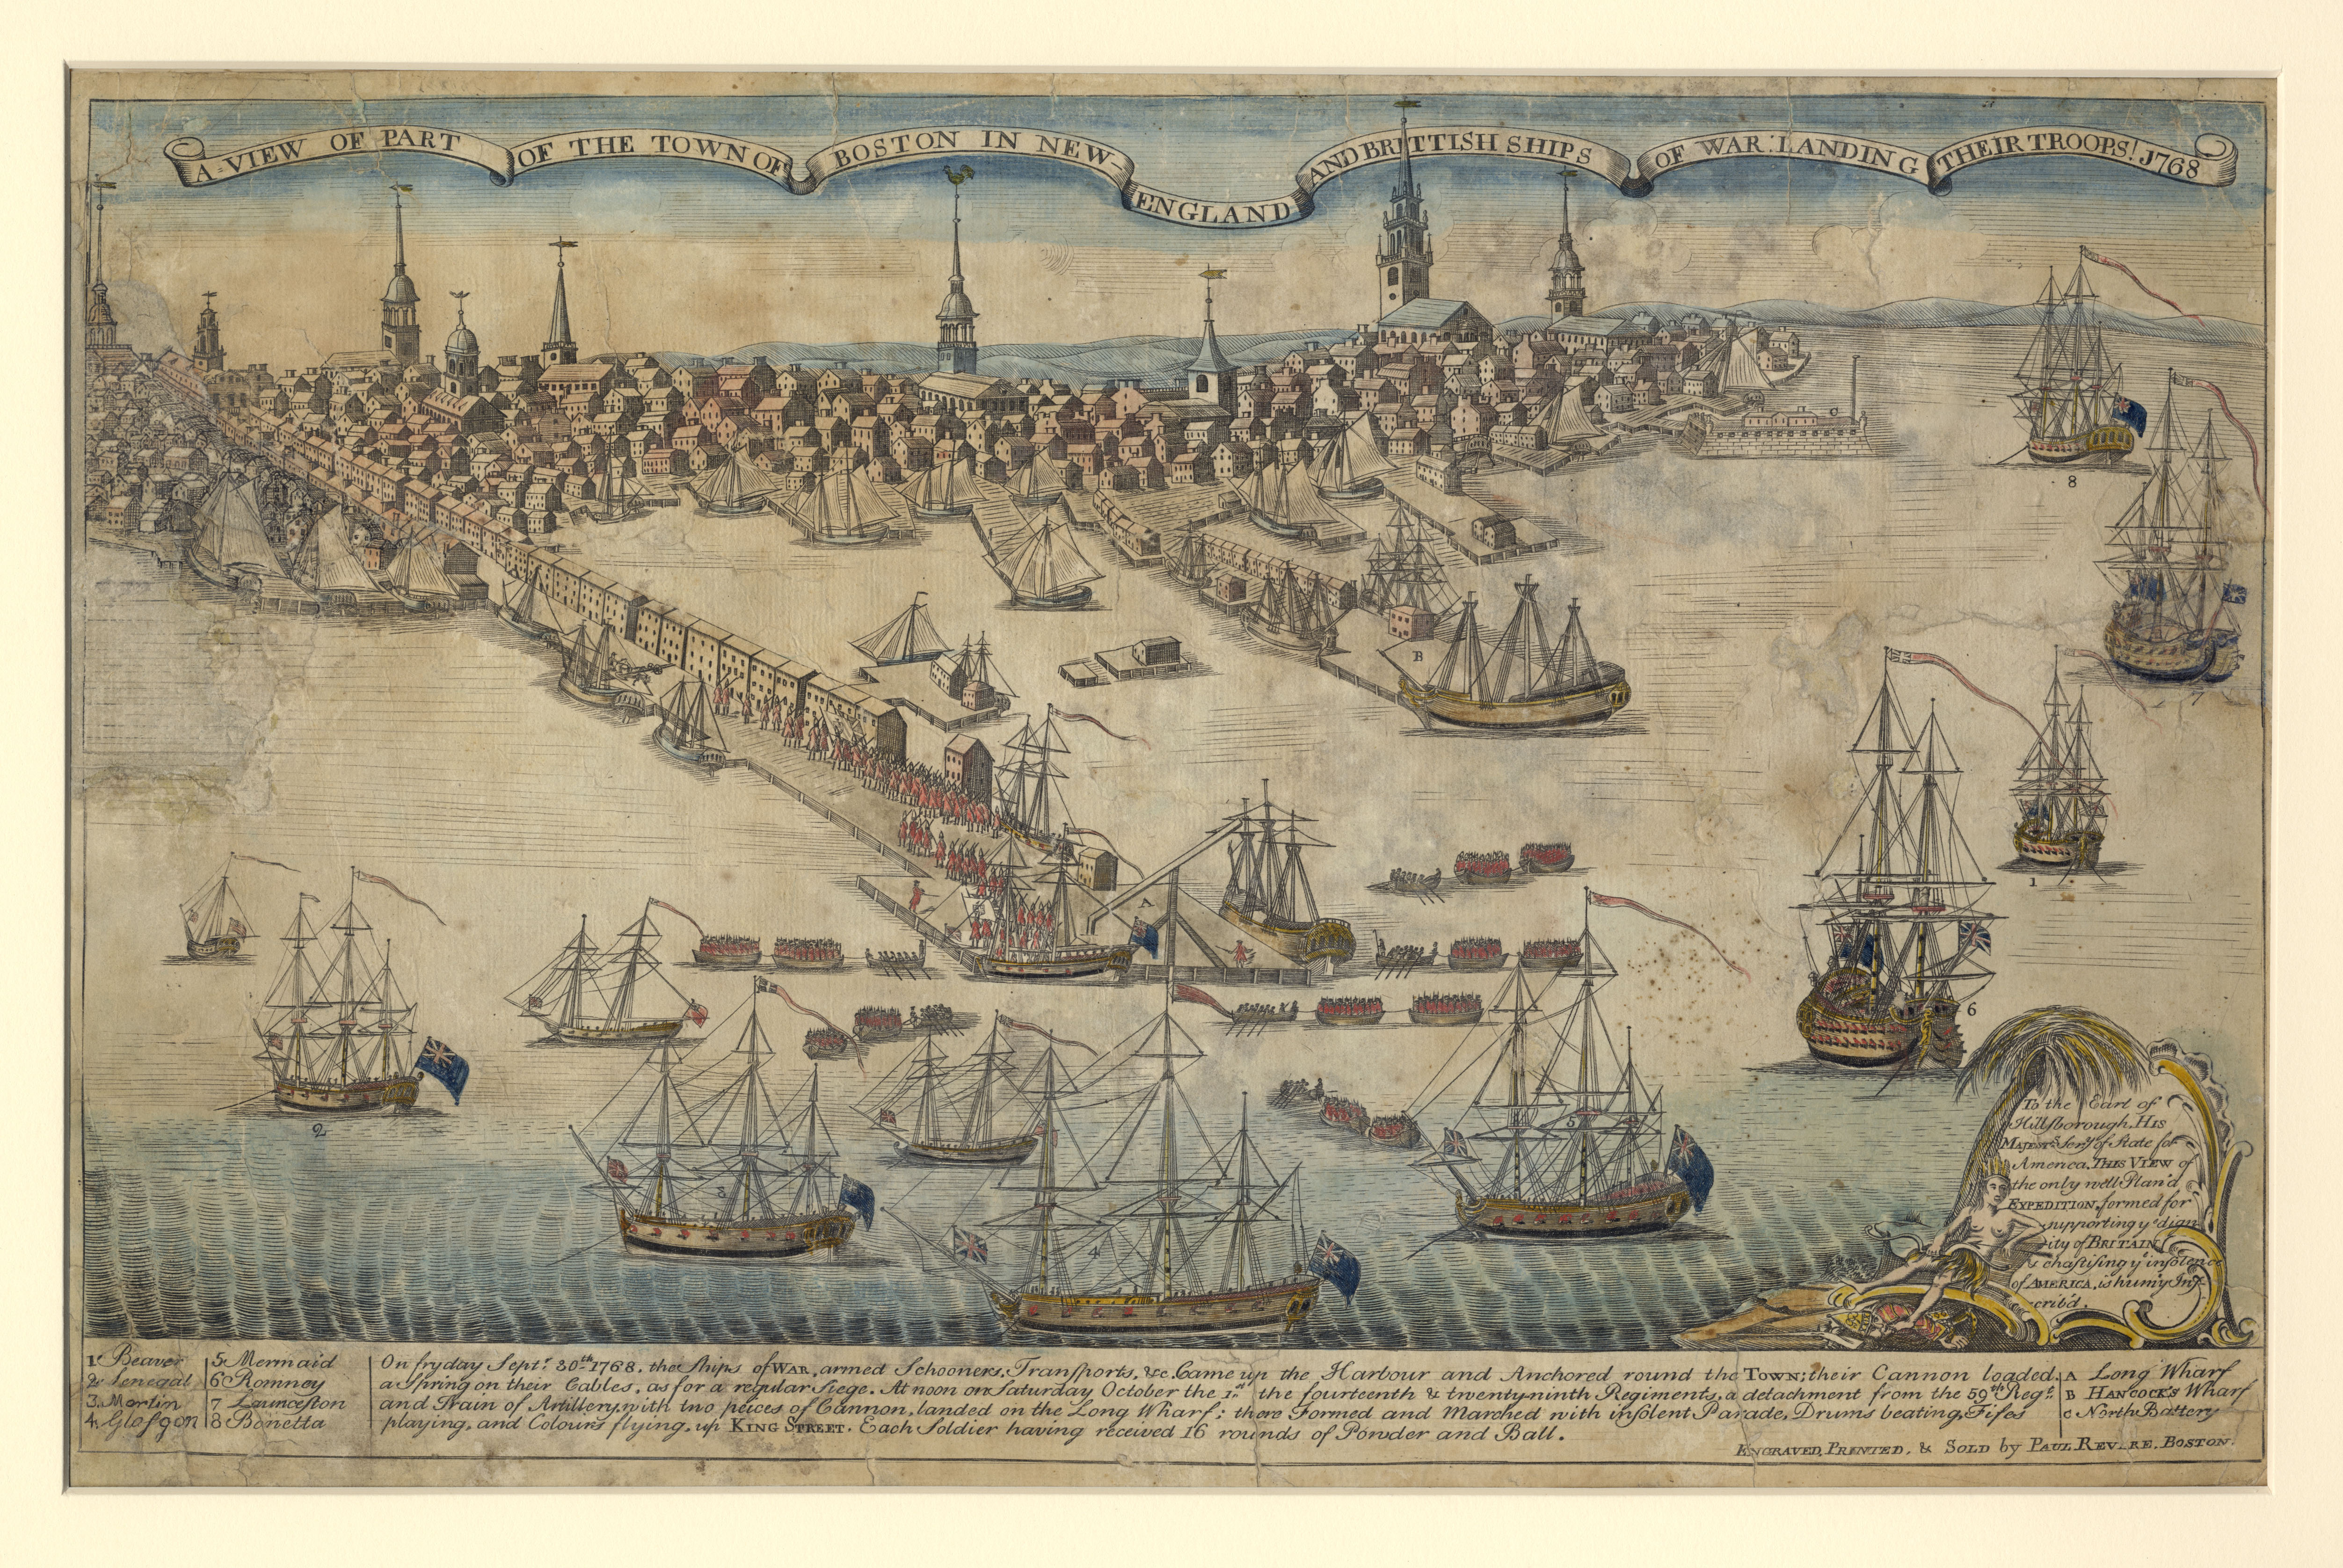 Engraving by Paul Revere. Depicts British ships landing at the Long Wharf .